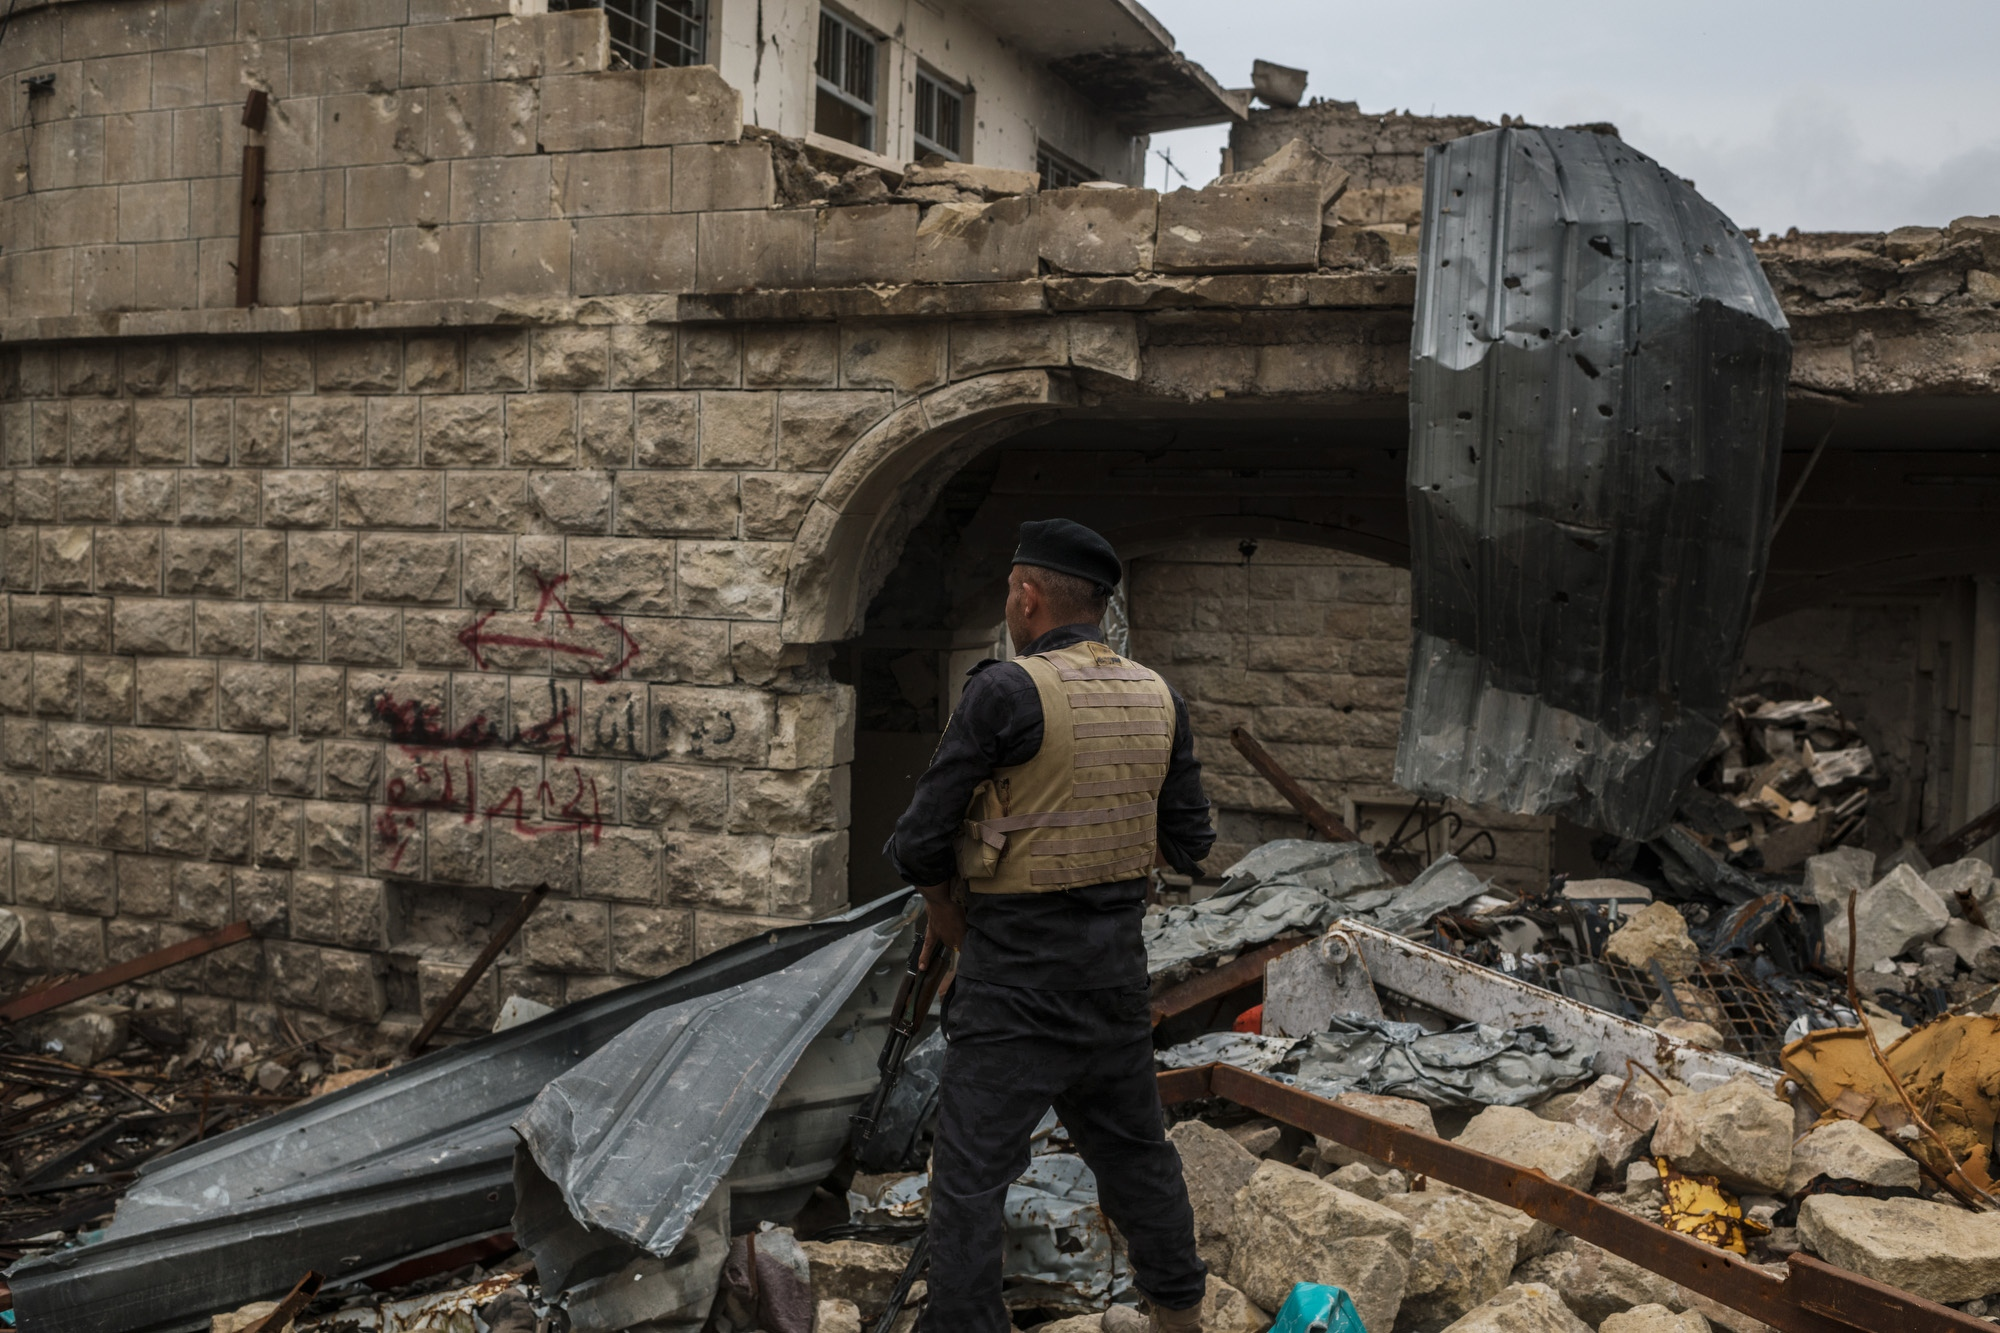 MOSUL 20180413 A police officer just fired a shot in the air to scare of a looter in the alleys of old Mosul. Photo: Vilhelm Stokstad / Kontinent